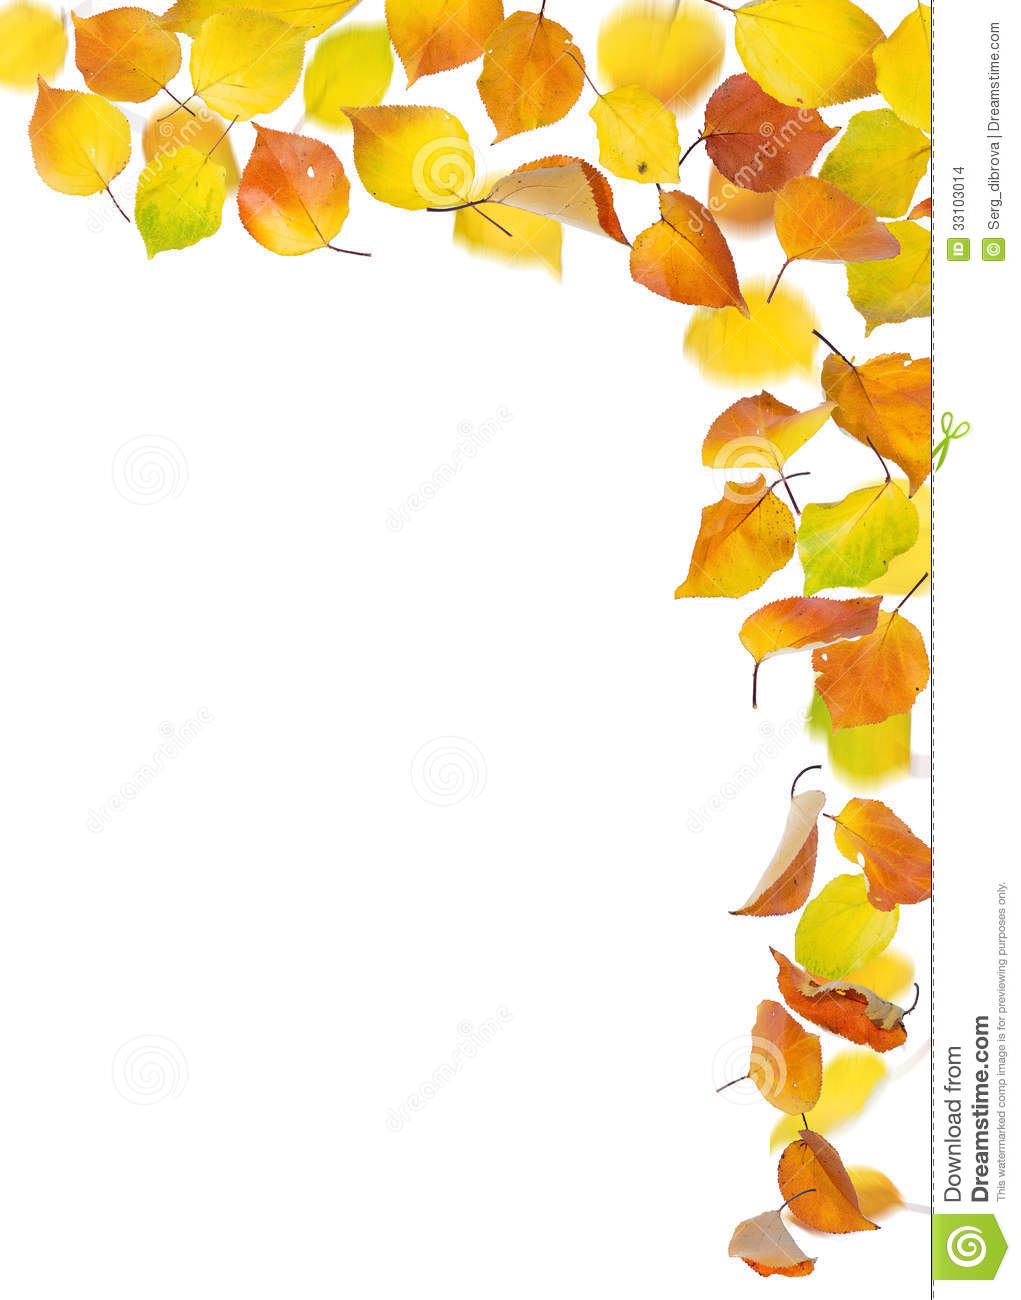 Falling Autumn Leaves Stock Images - Image: 33103014